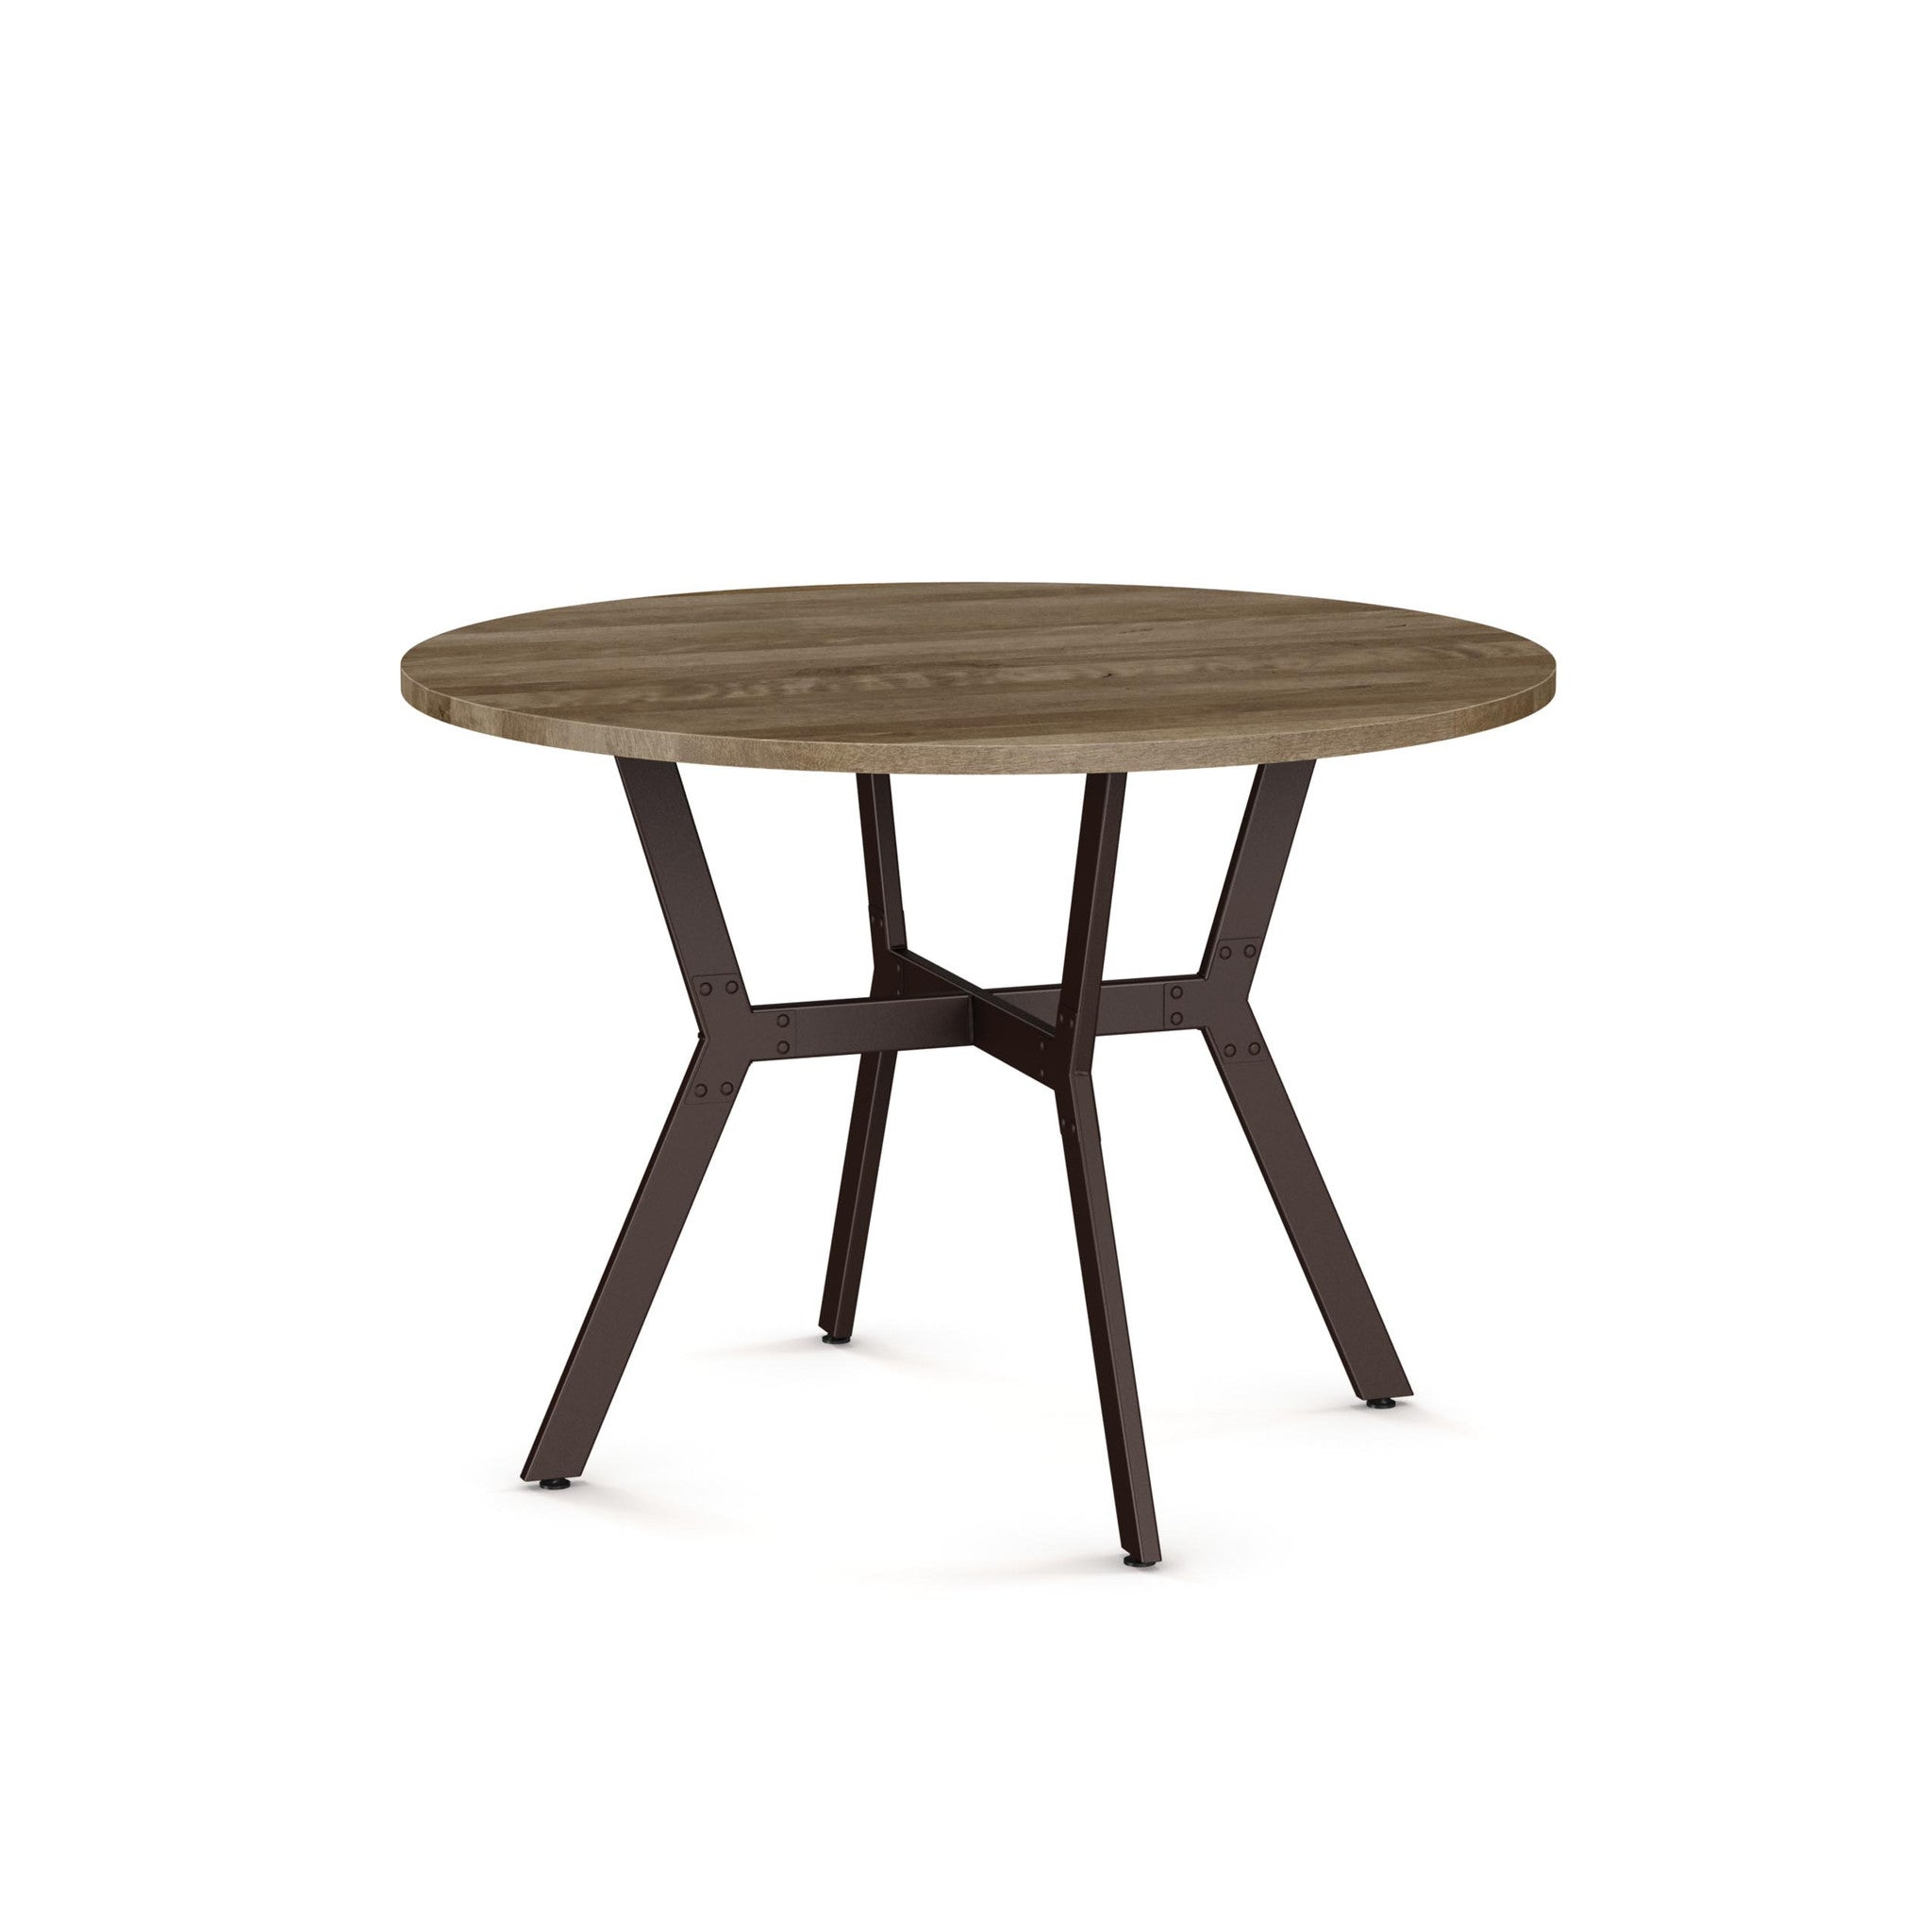 "Picture of Norcross Dining Table - 42"" Round"